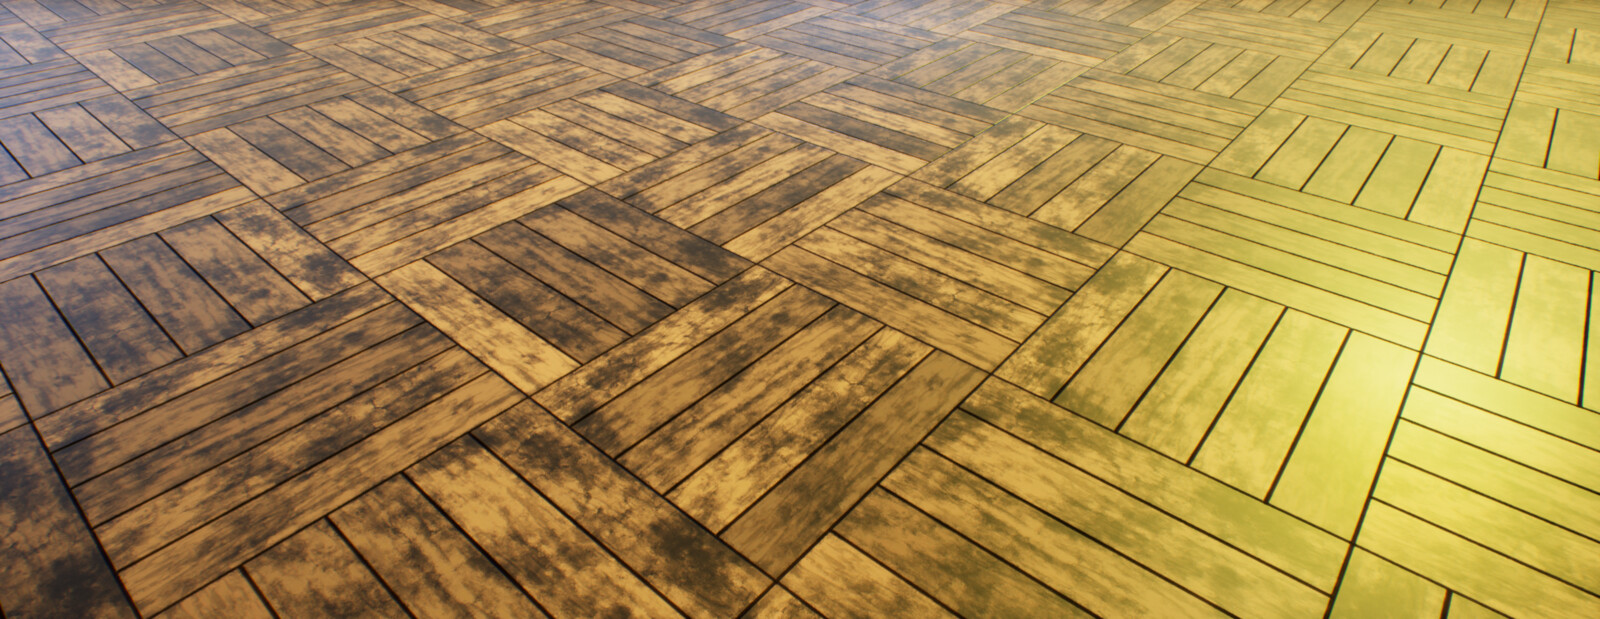 Floor Render in Unreal Engine